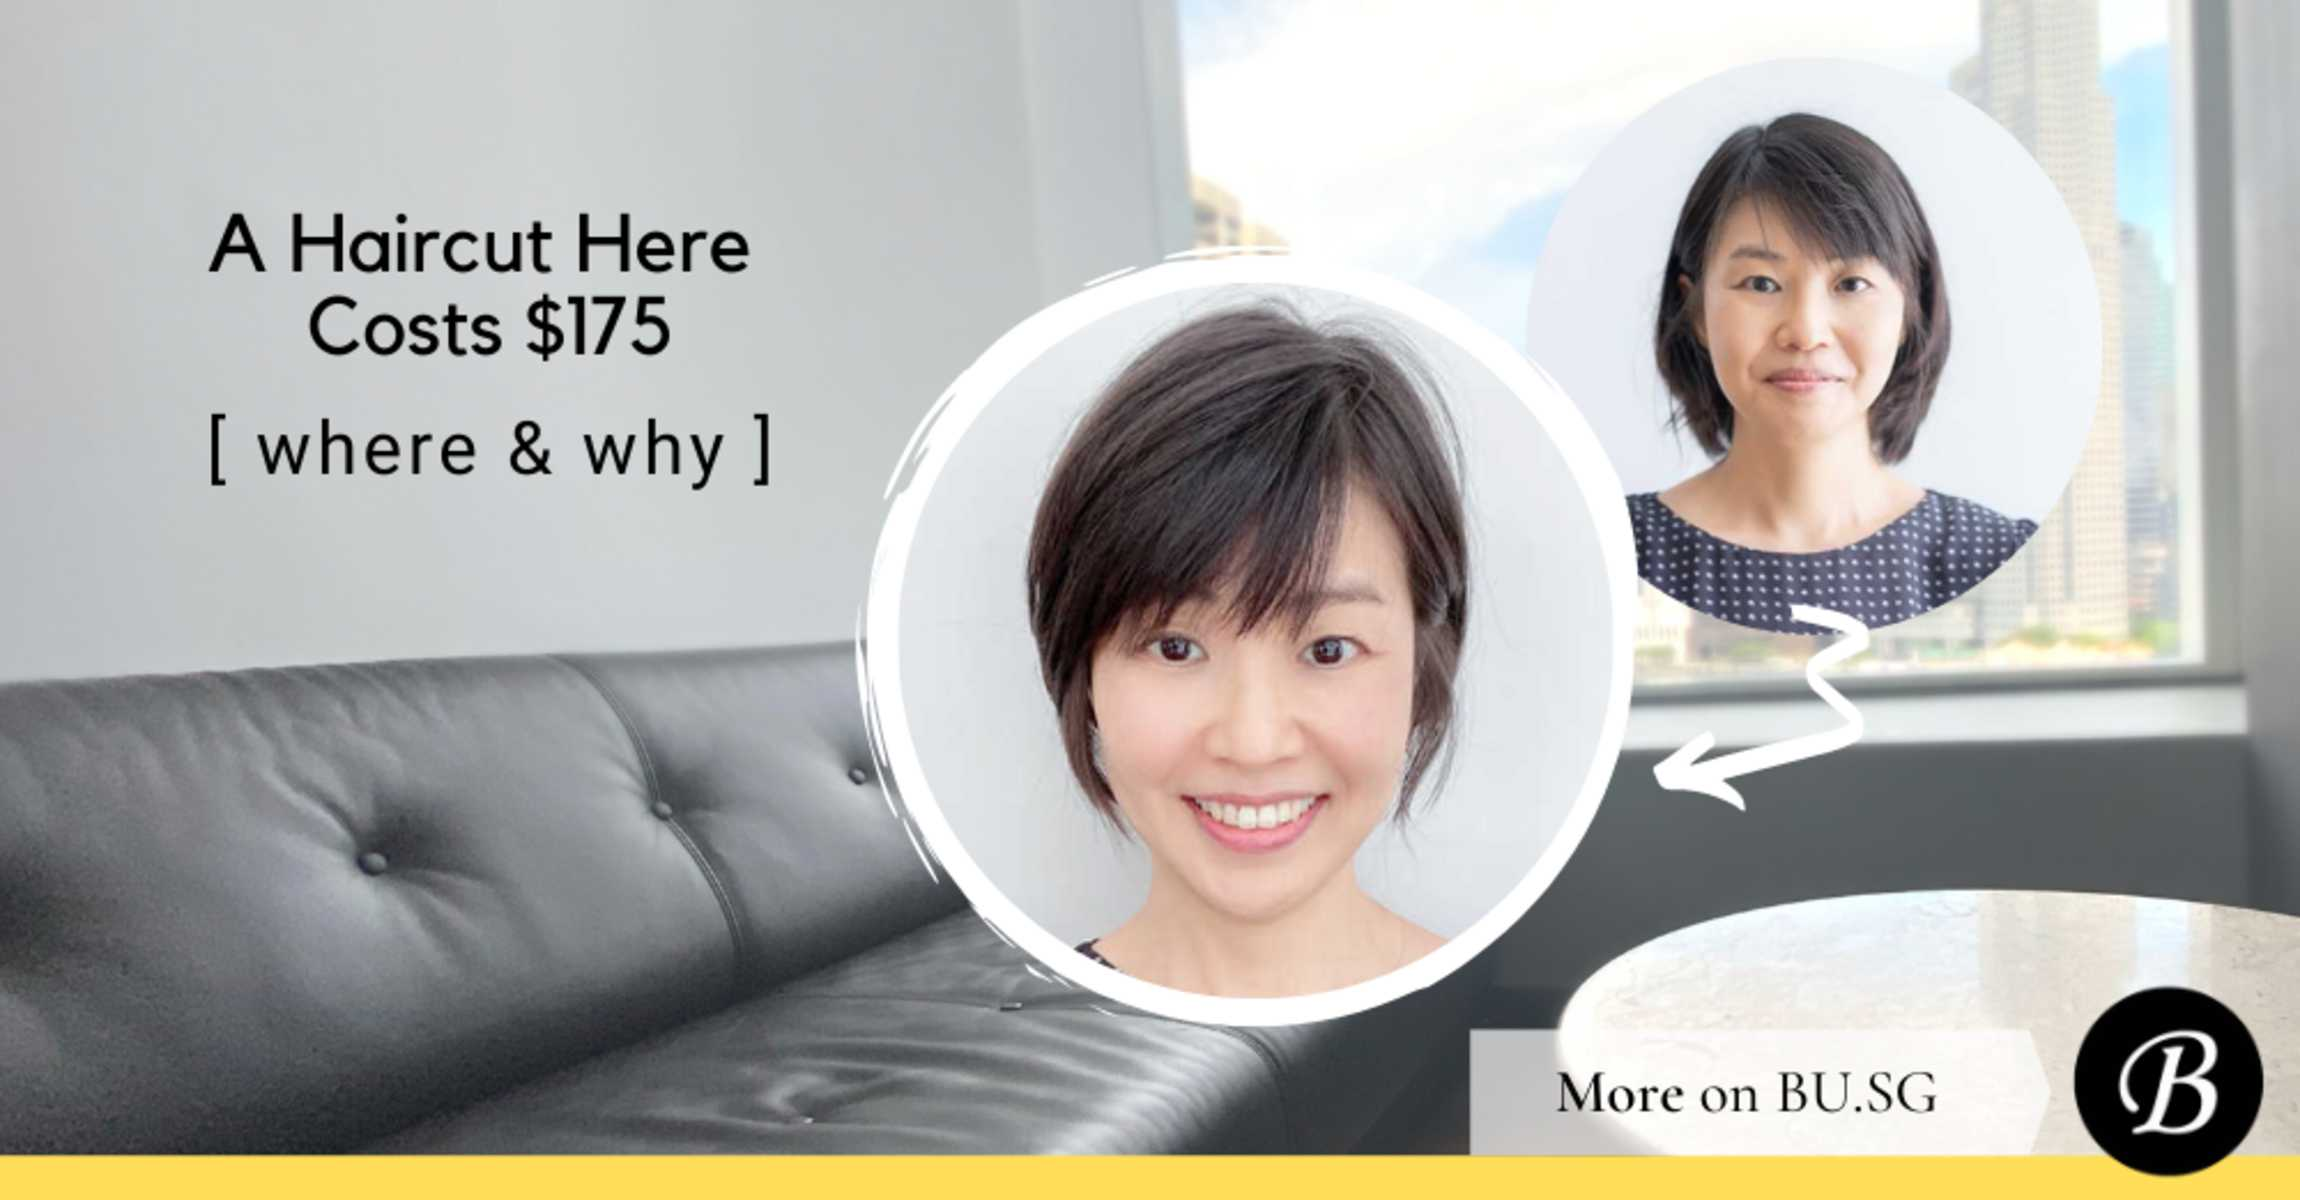 $175 Gets You One of the Best Haircuts in Singapore. Find out what it entails.